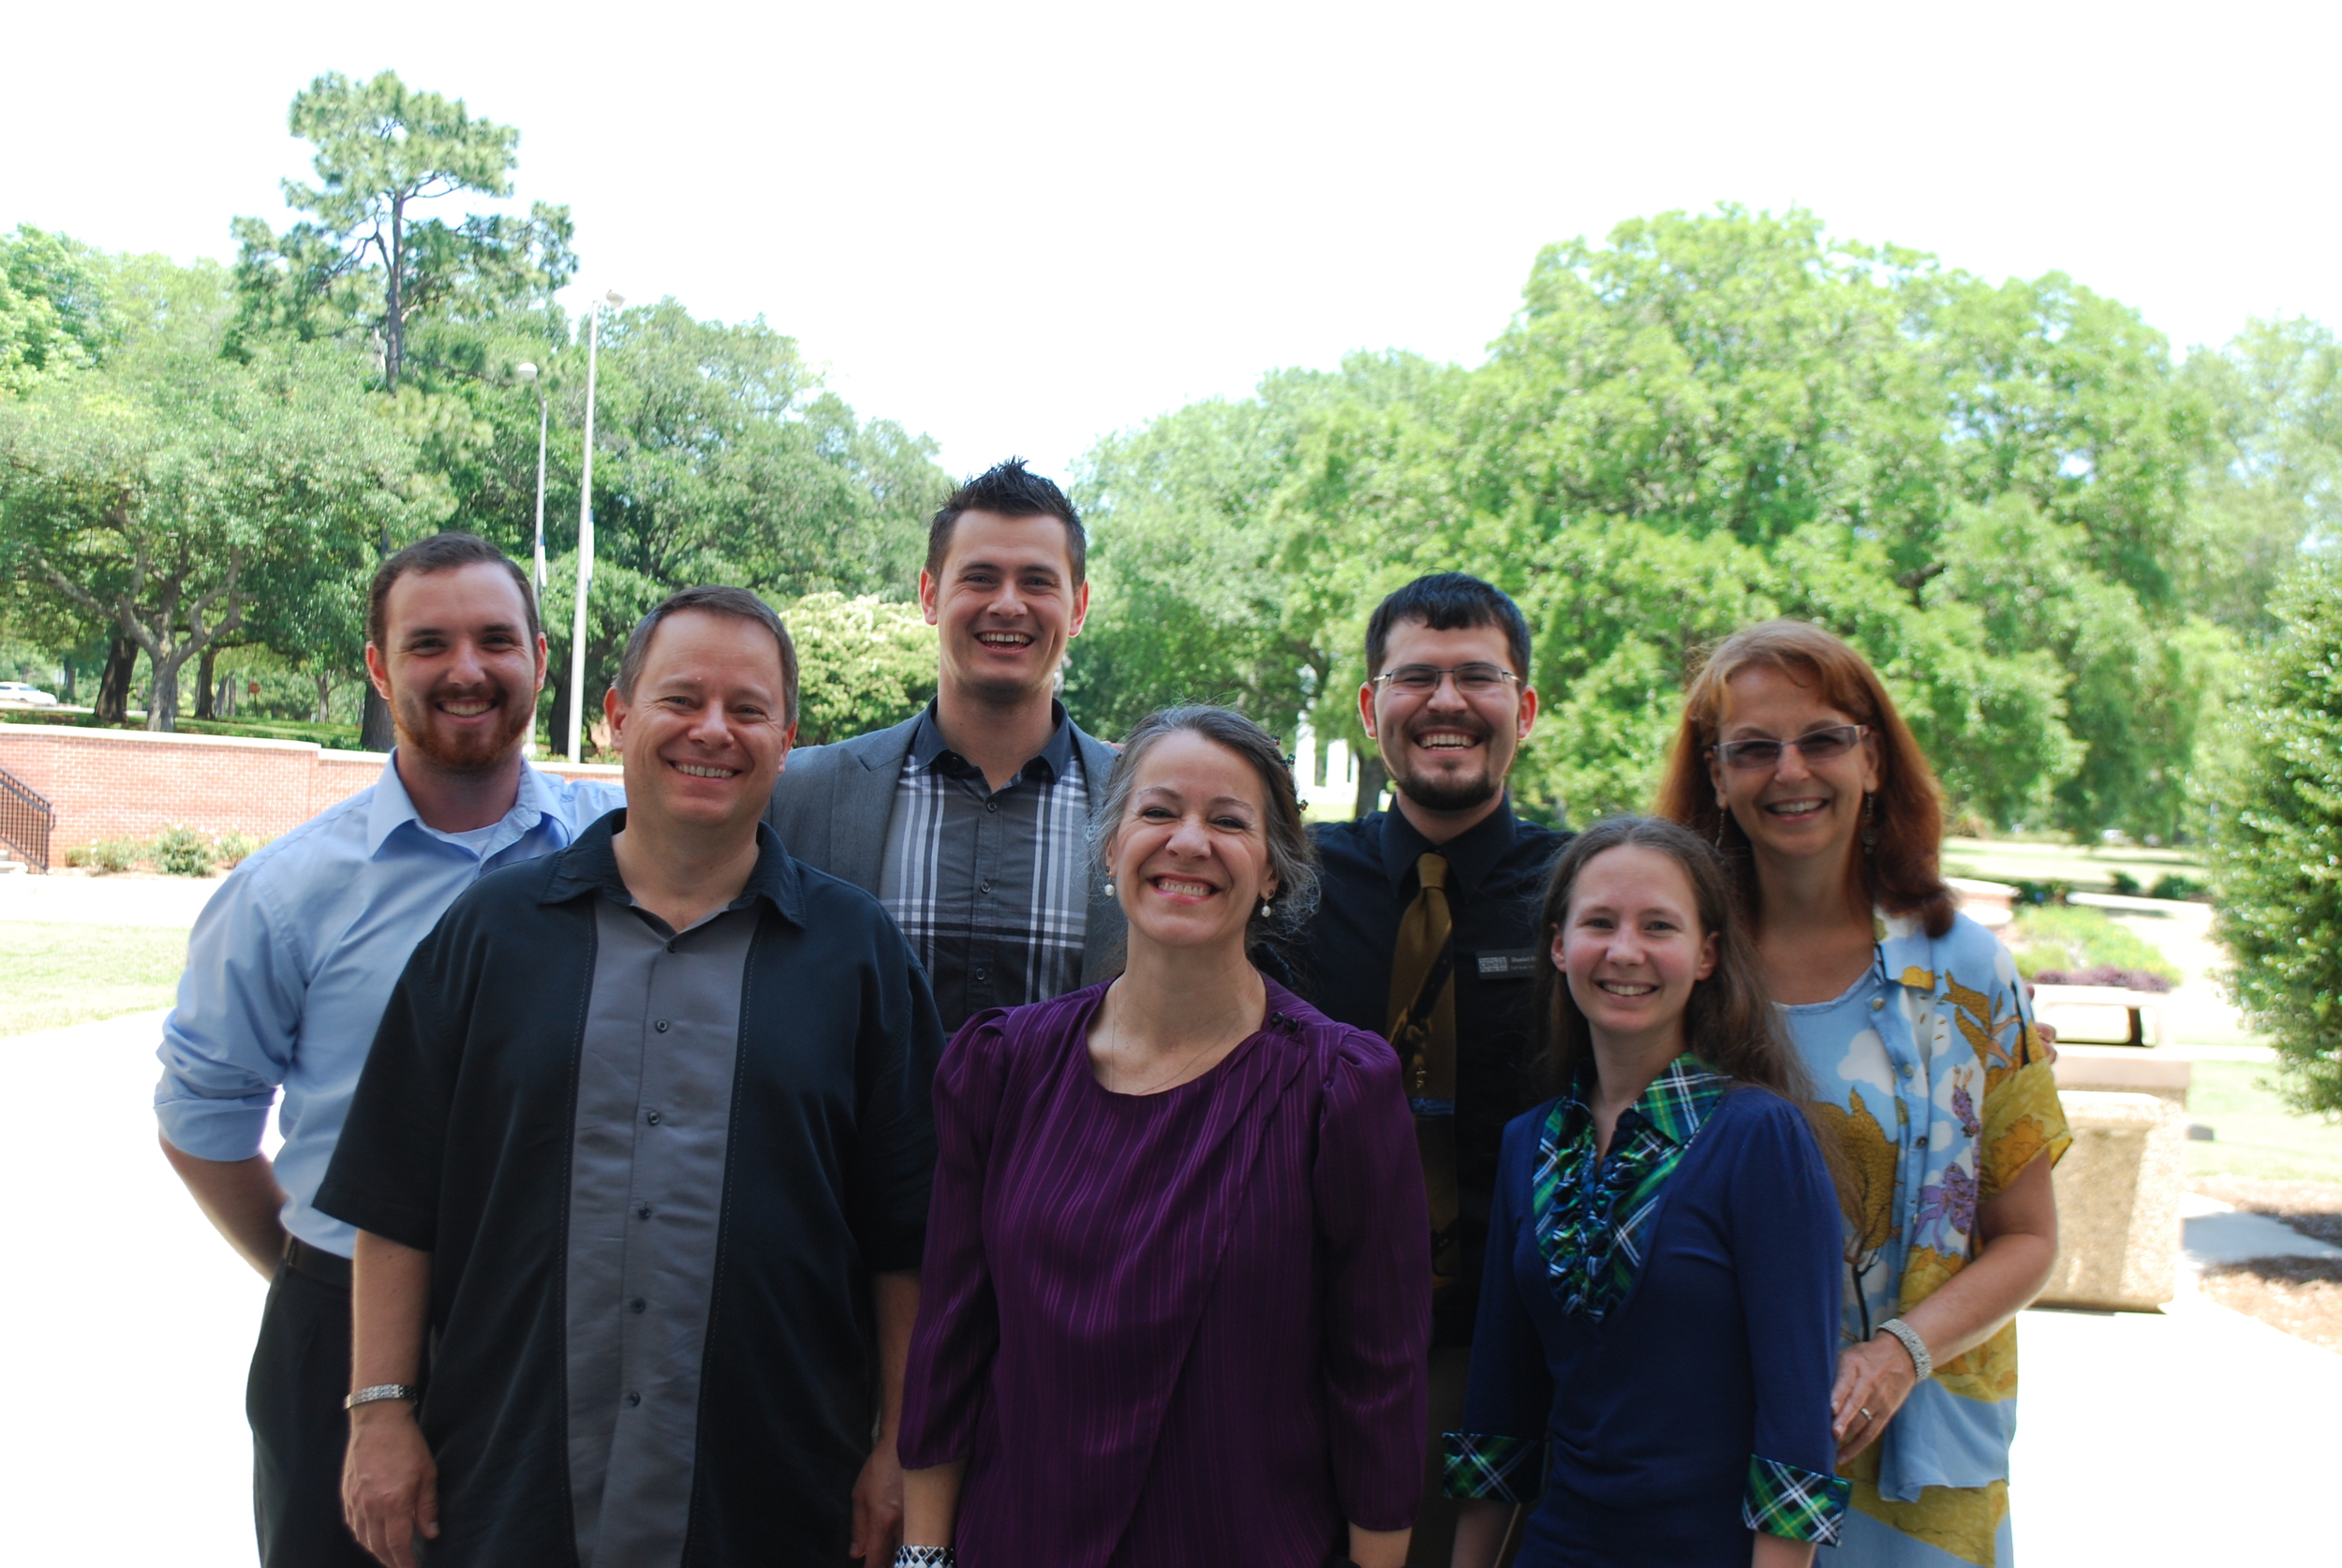 From left to right: Mr. Tad, Mr. David, Mr. Josh, Mrs. Natalie, Mr. Daniel, Mrs. Laura, and Mrs. Angela. (Mrs. Laryssa and Mr. Mark are not pictured)